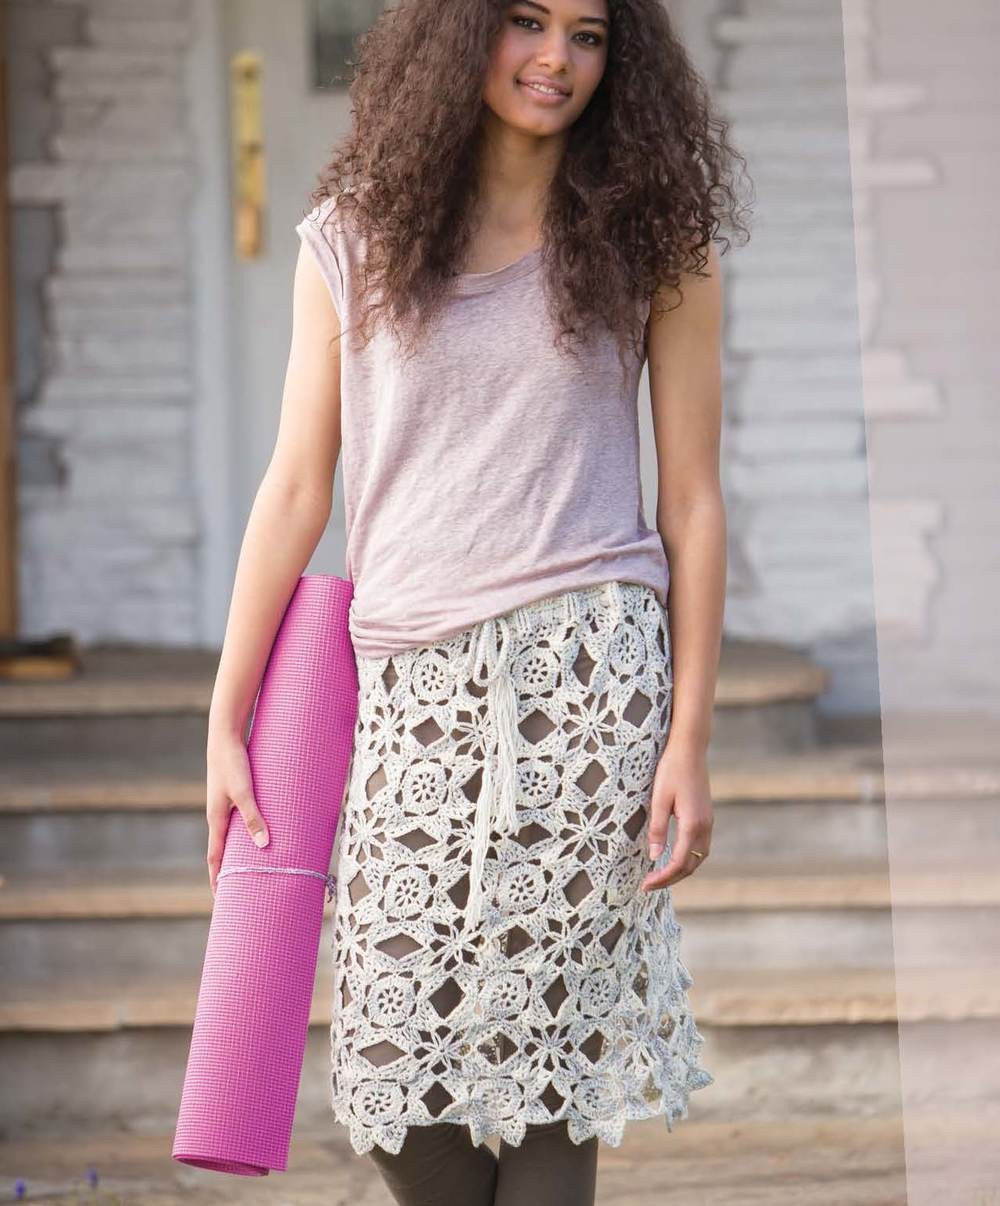 Crochet So Lovely -  Moonlight Stroll Skirt beauty shot.jpg